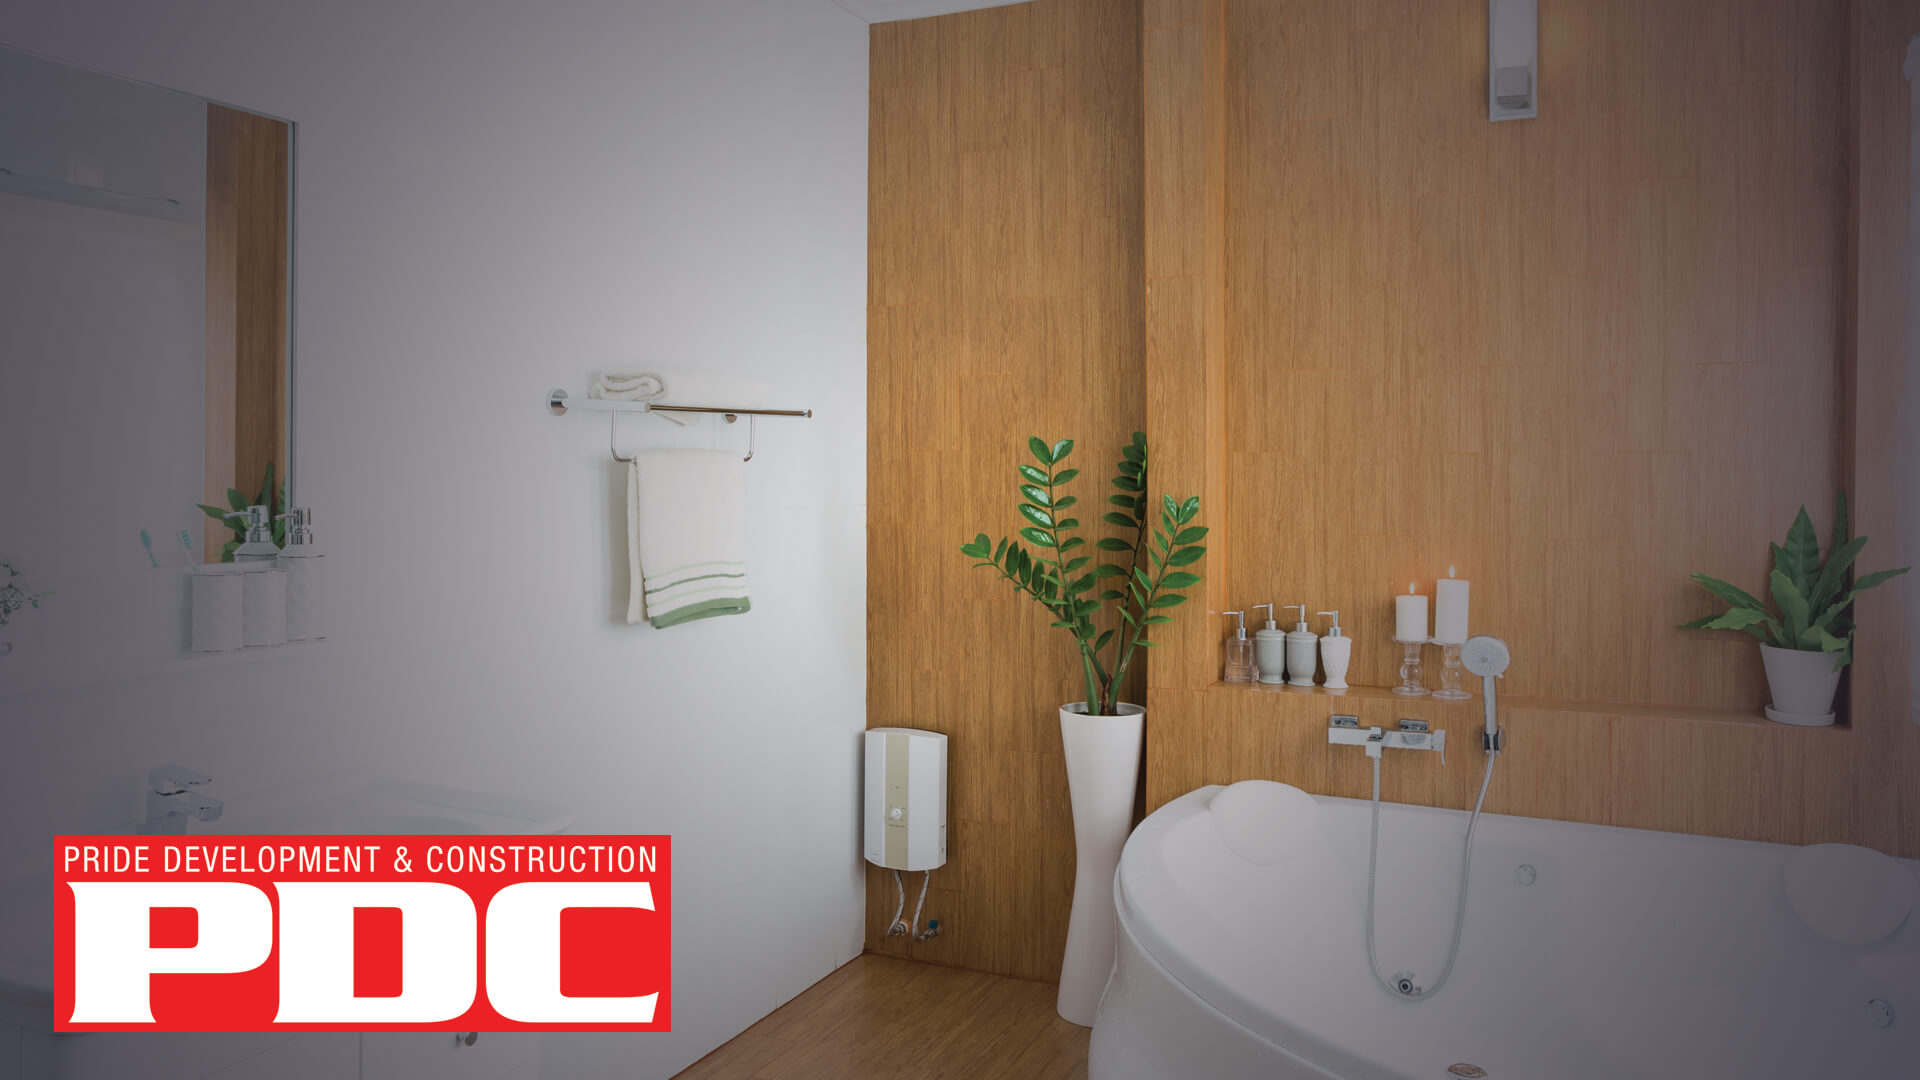 Home Contractors in Colorado Feature Top Bathroom Remodel Investments for Design and Safety